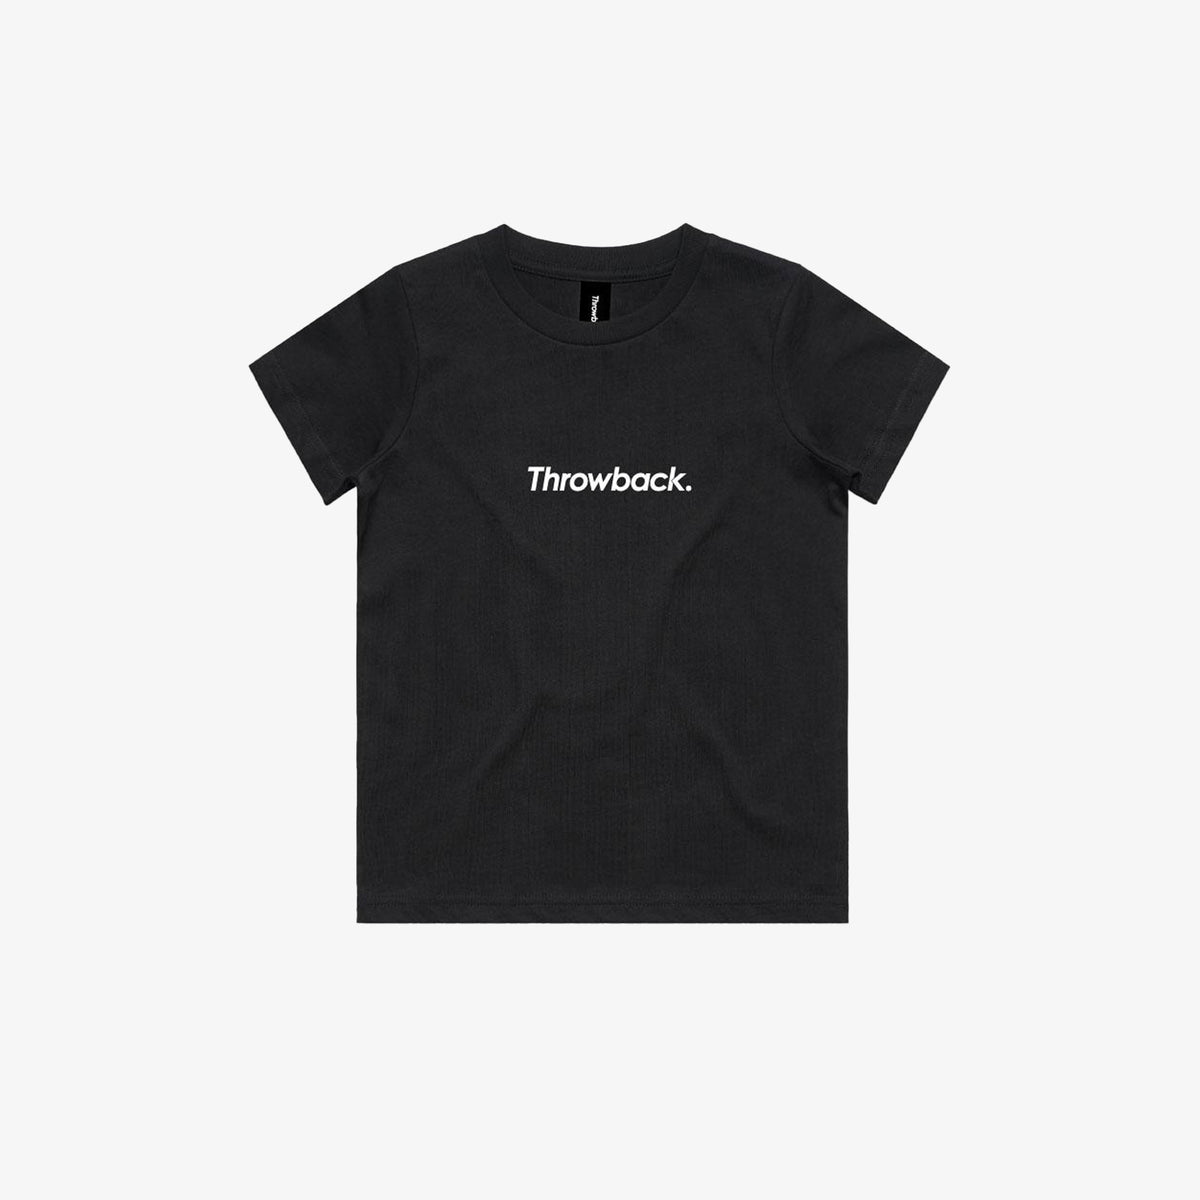 Throwback Flock Toddler T-Shirt - Black